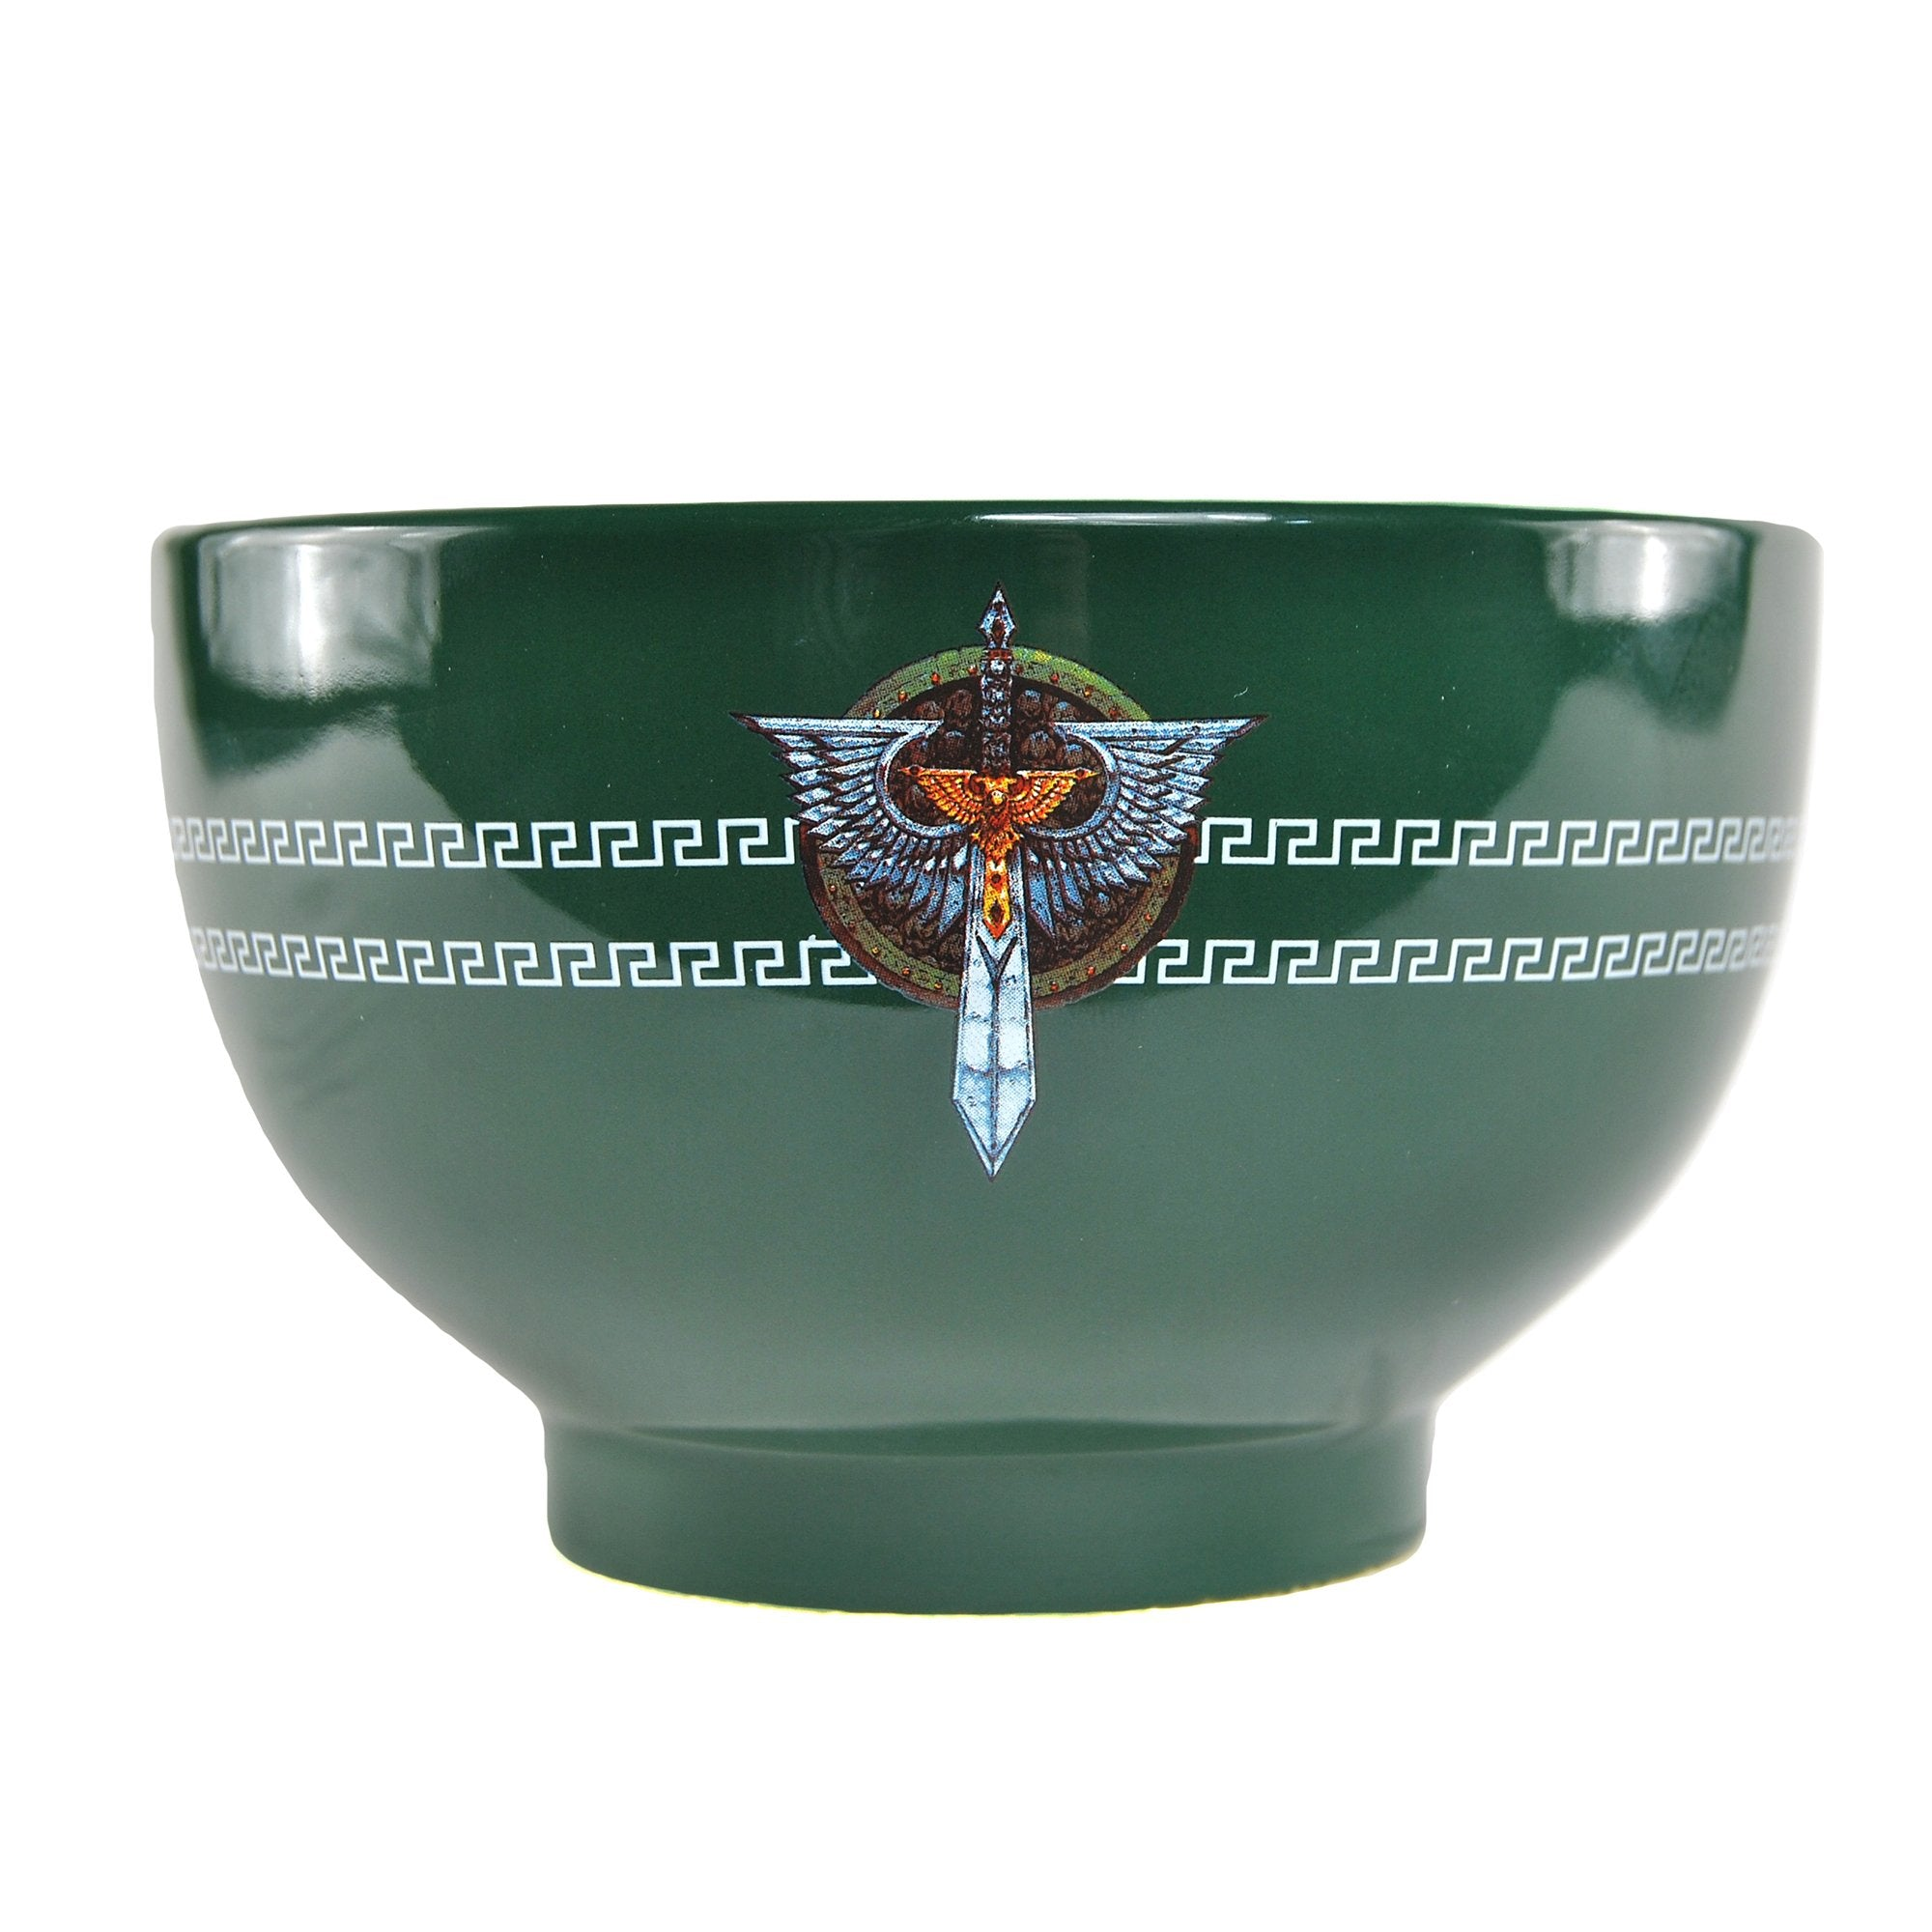 Warhammer 40,000 Bowl - Dark Angels - Half Moon Bay US